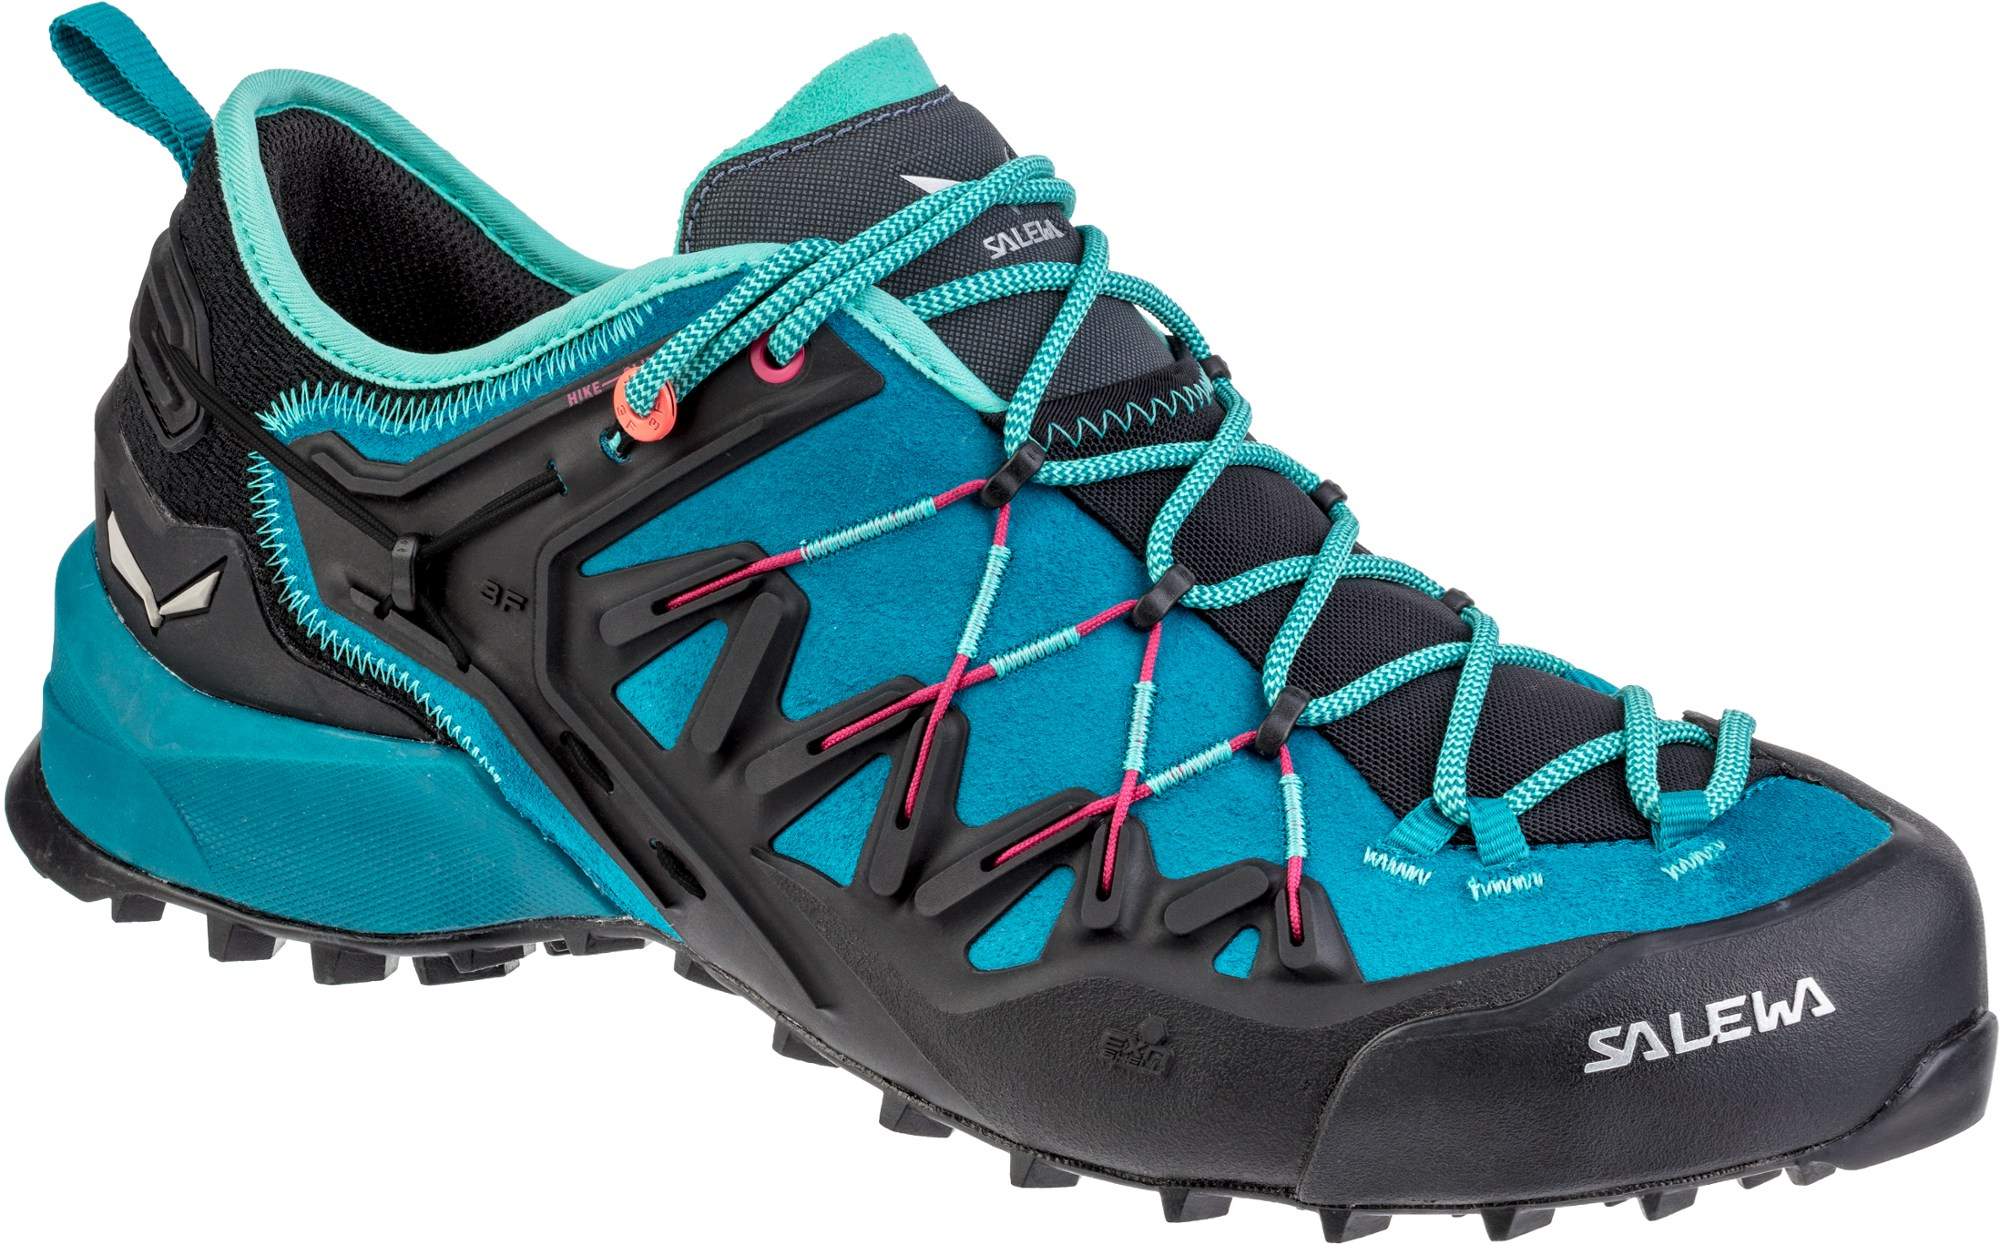 Salewa Wildfire Edge Approach Shoes - Women's